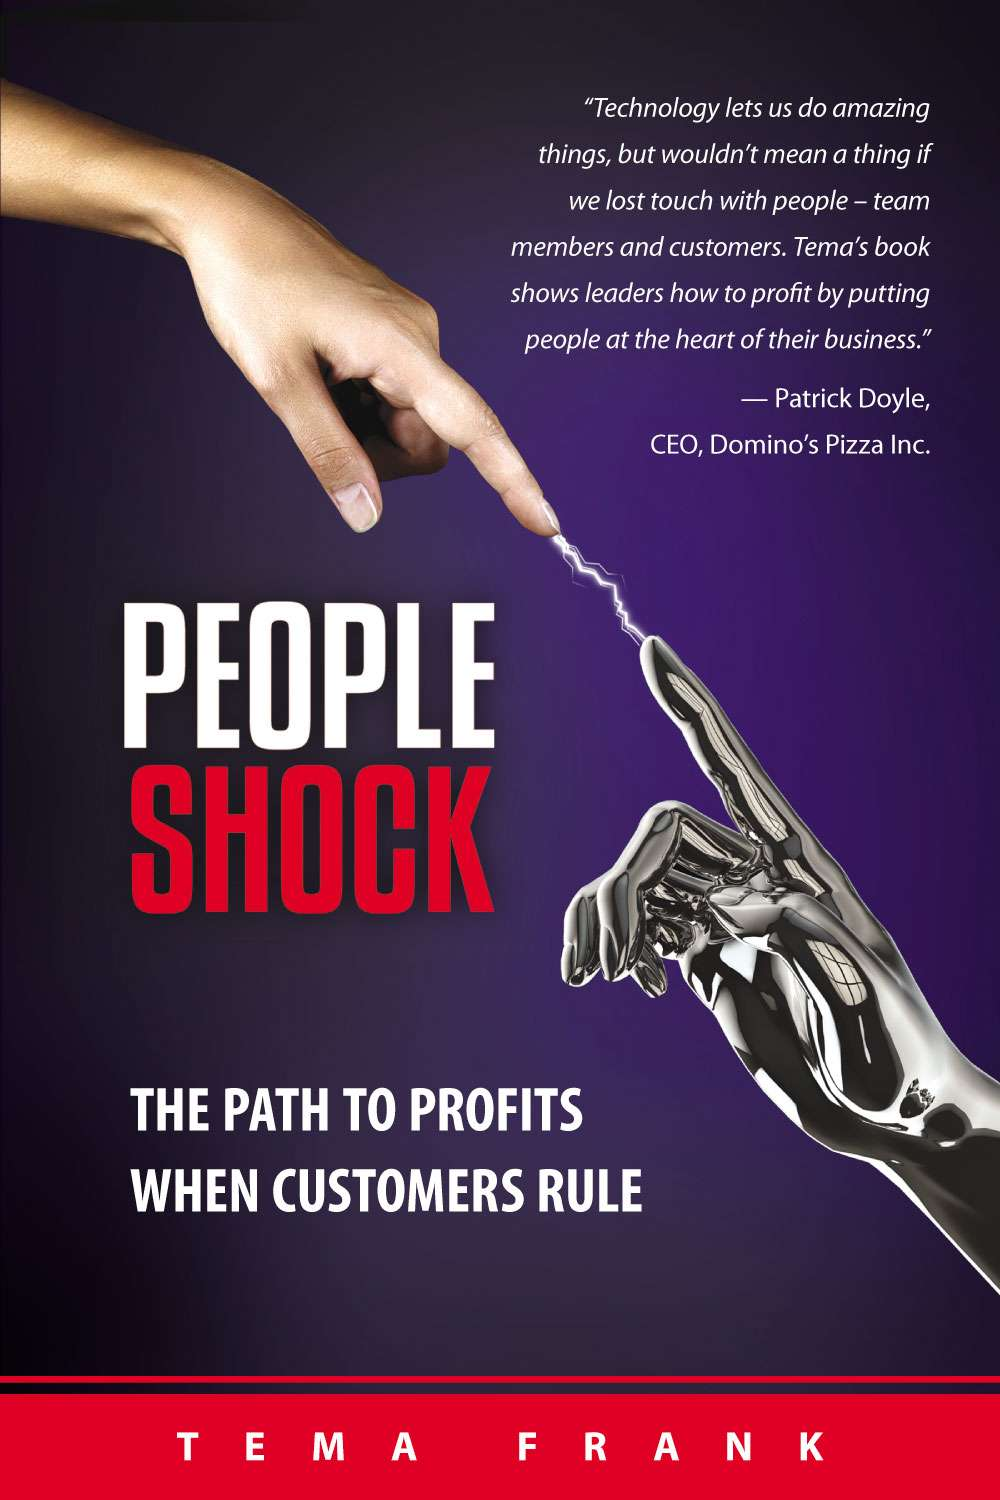 The front cover of PeopleShock, by Tema Frank